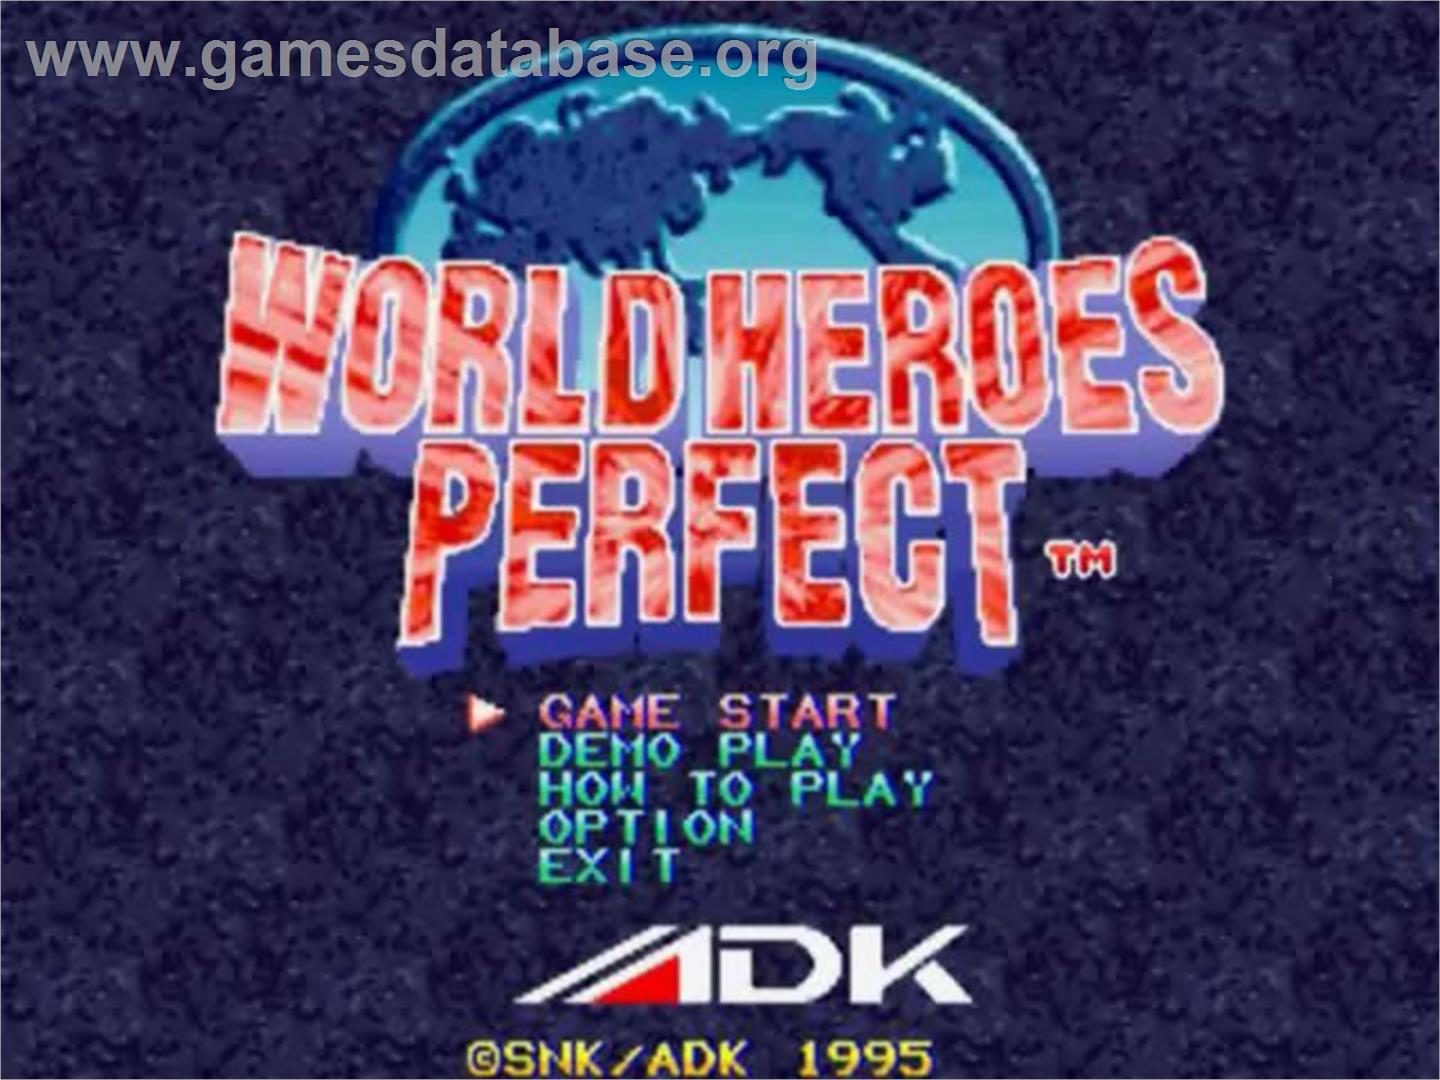 of World Heroes Perfect: The Ultimate Heroes on the SNK Neo-Geo CD